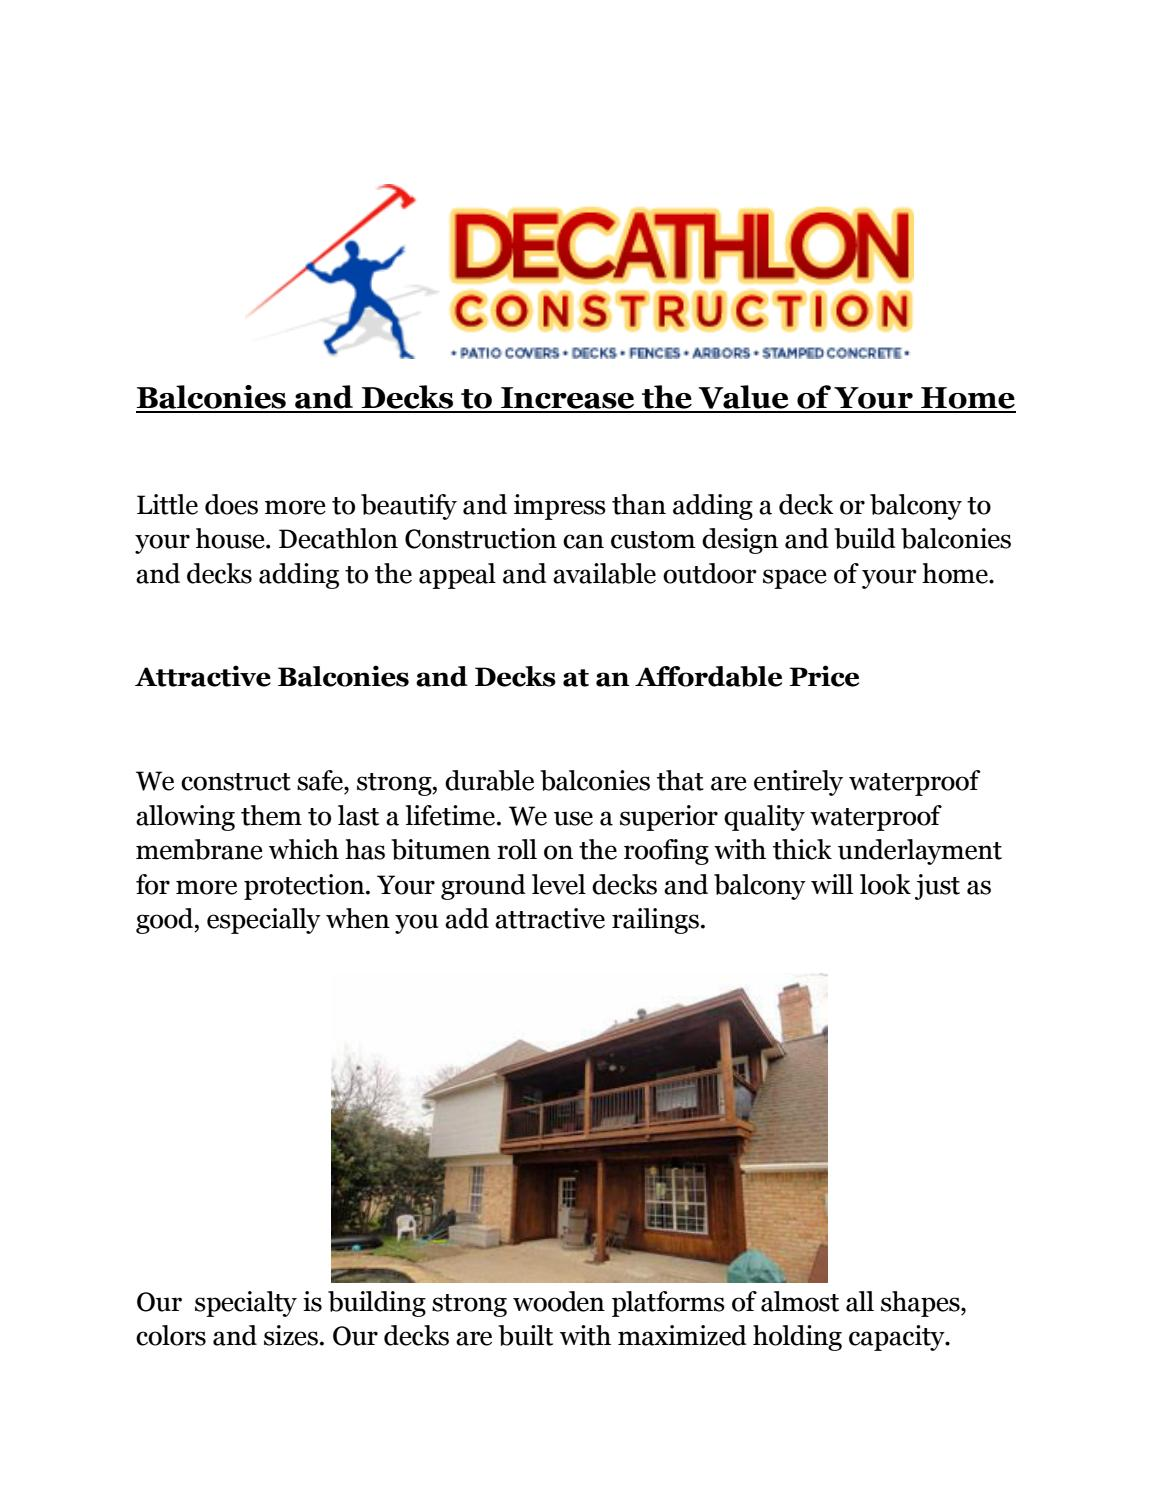 Balconies and decks to increase the value of your home by Aden ...